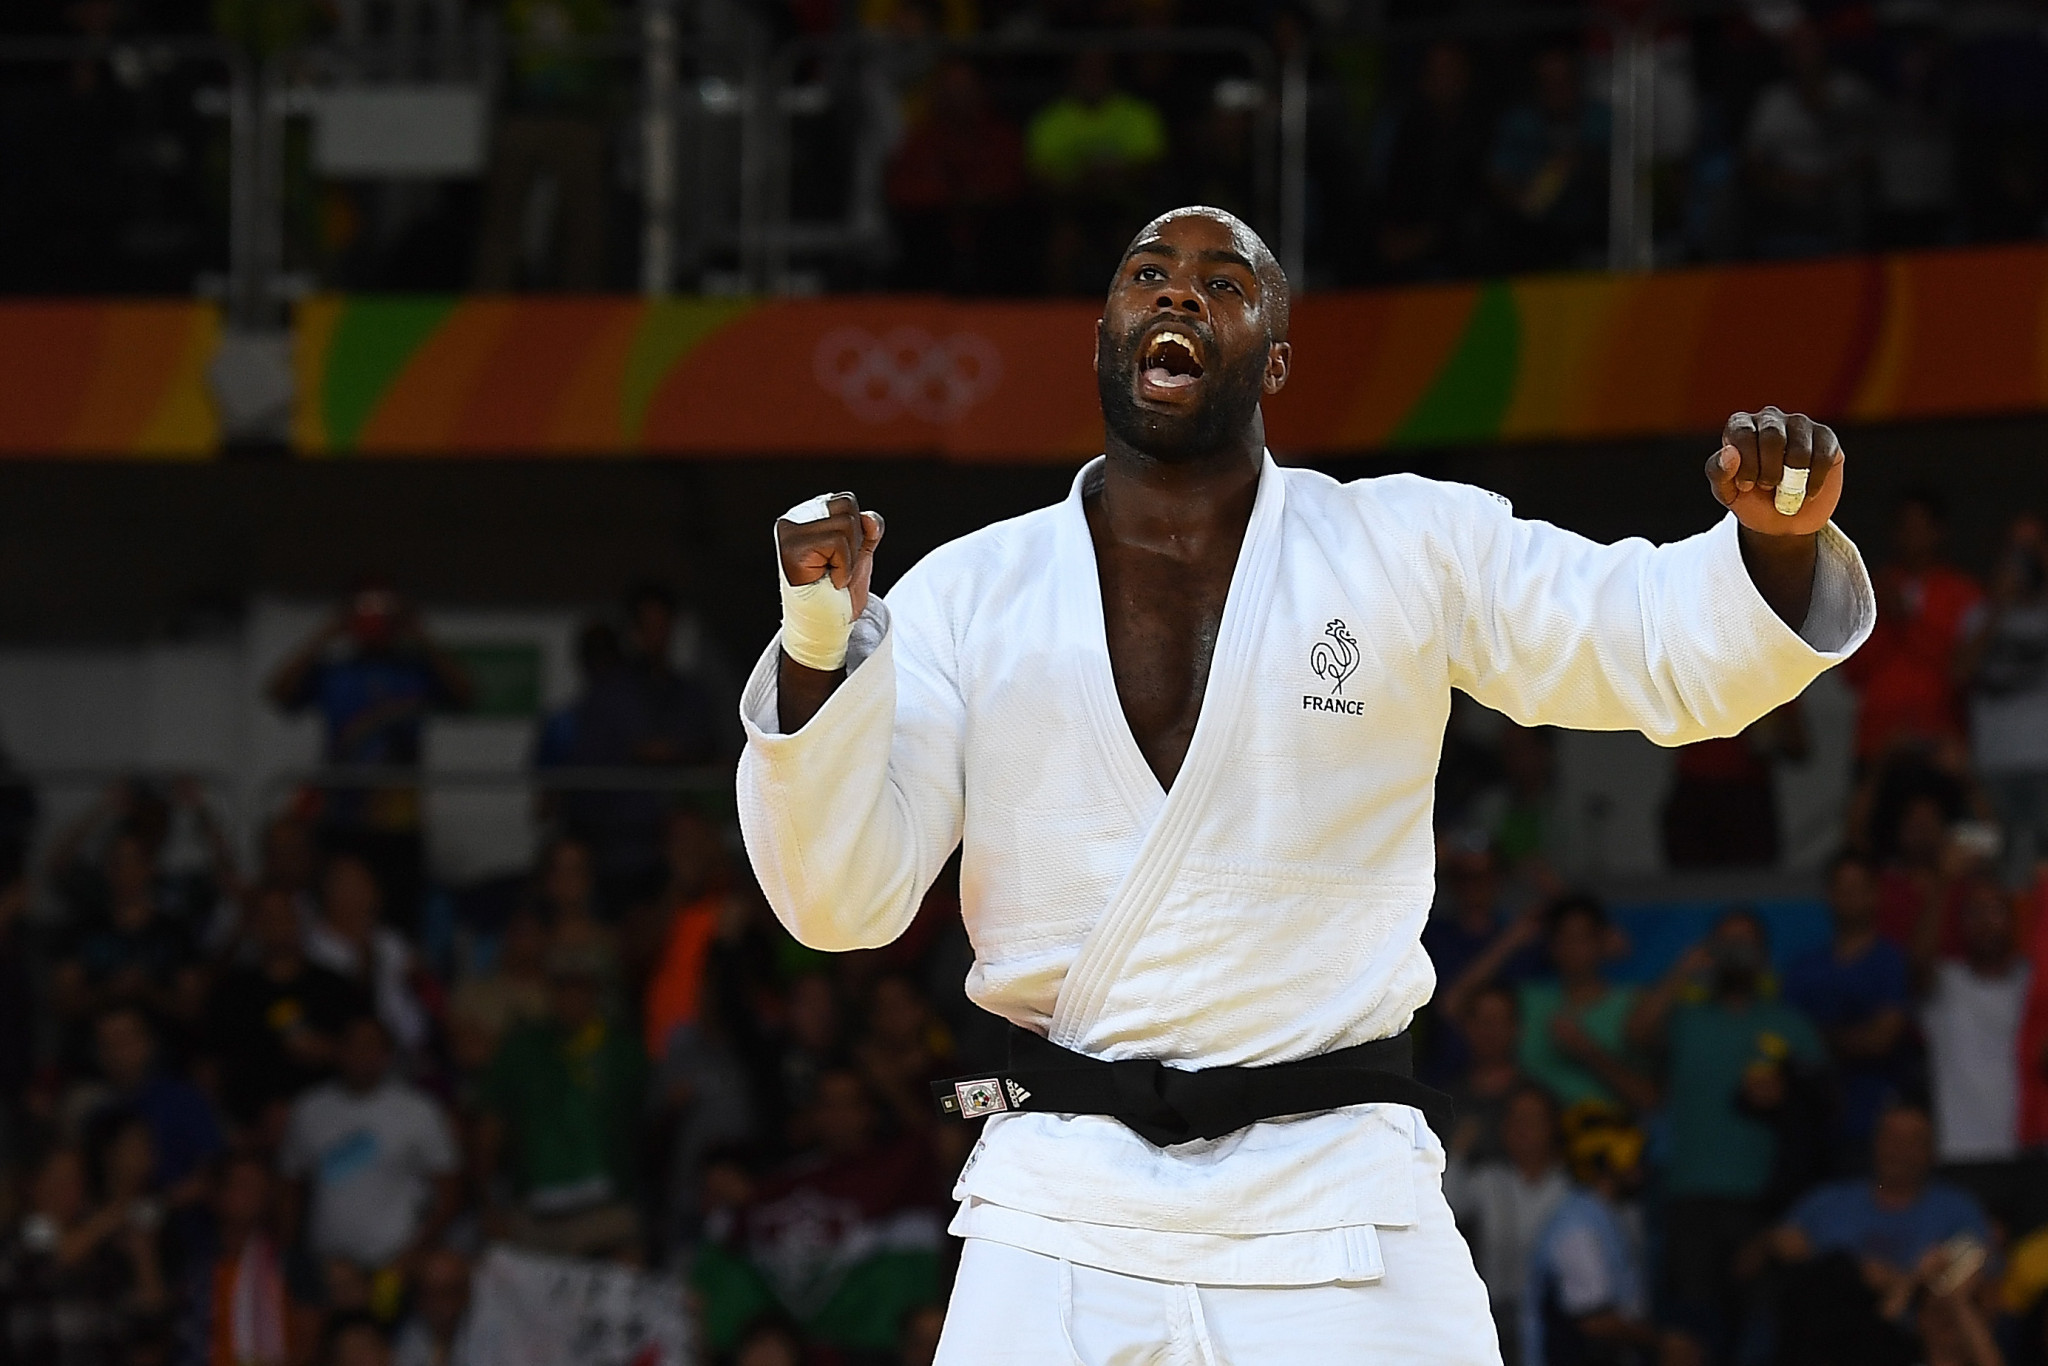 Two-time Olympic champion Riner headlines IJF World Judo Masters in Doha